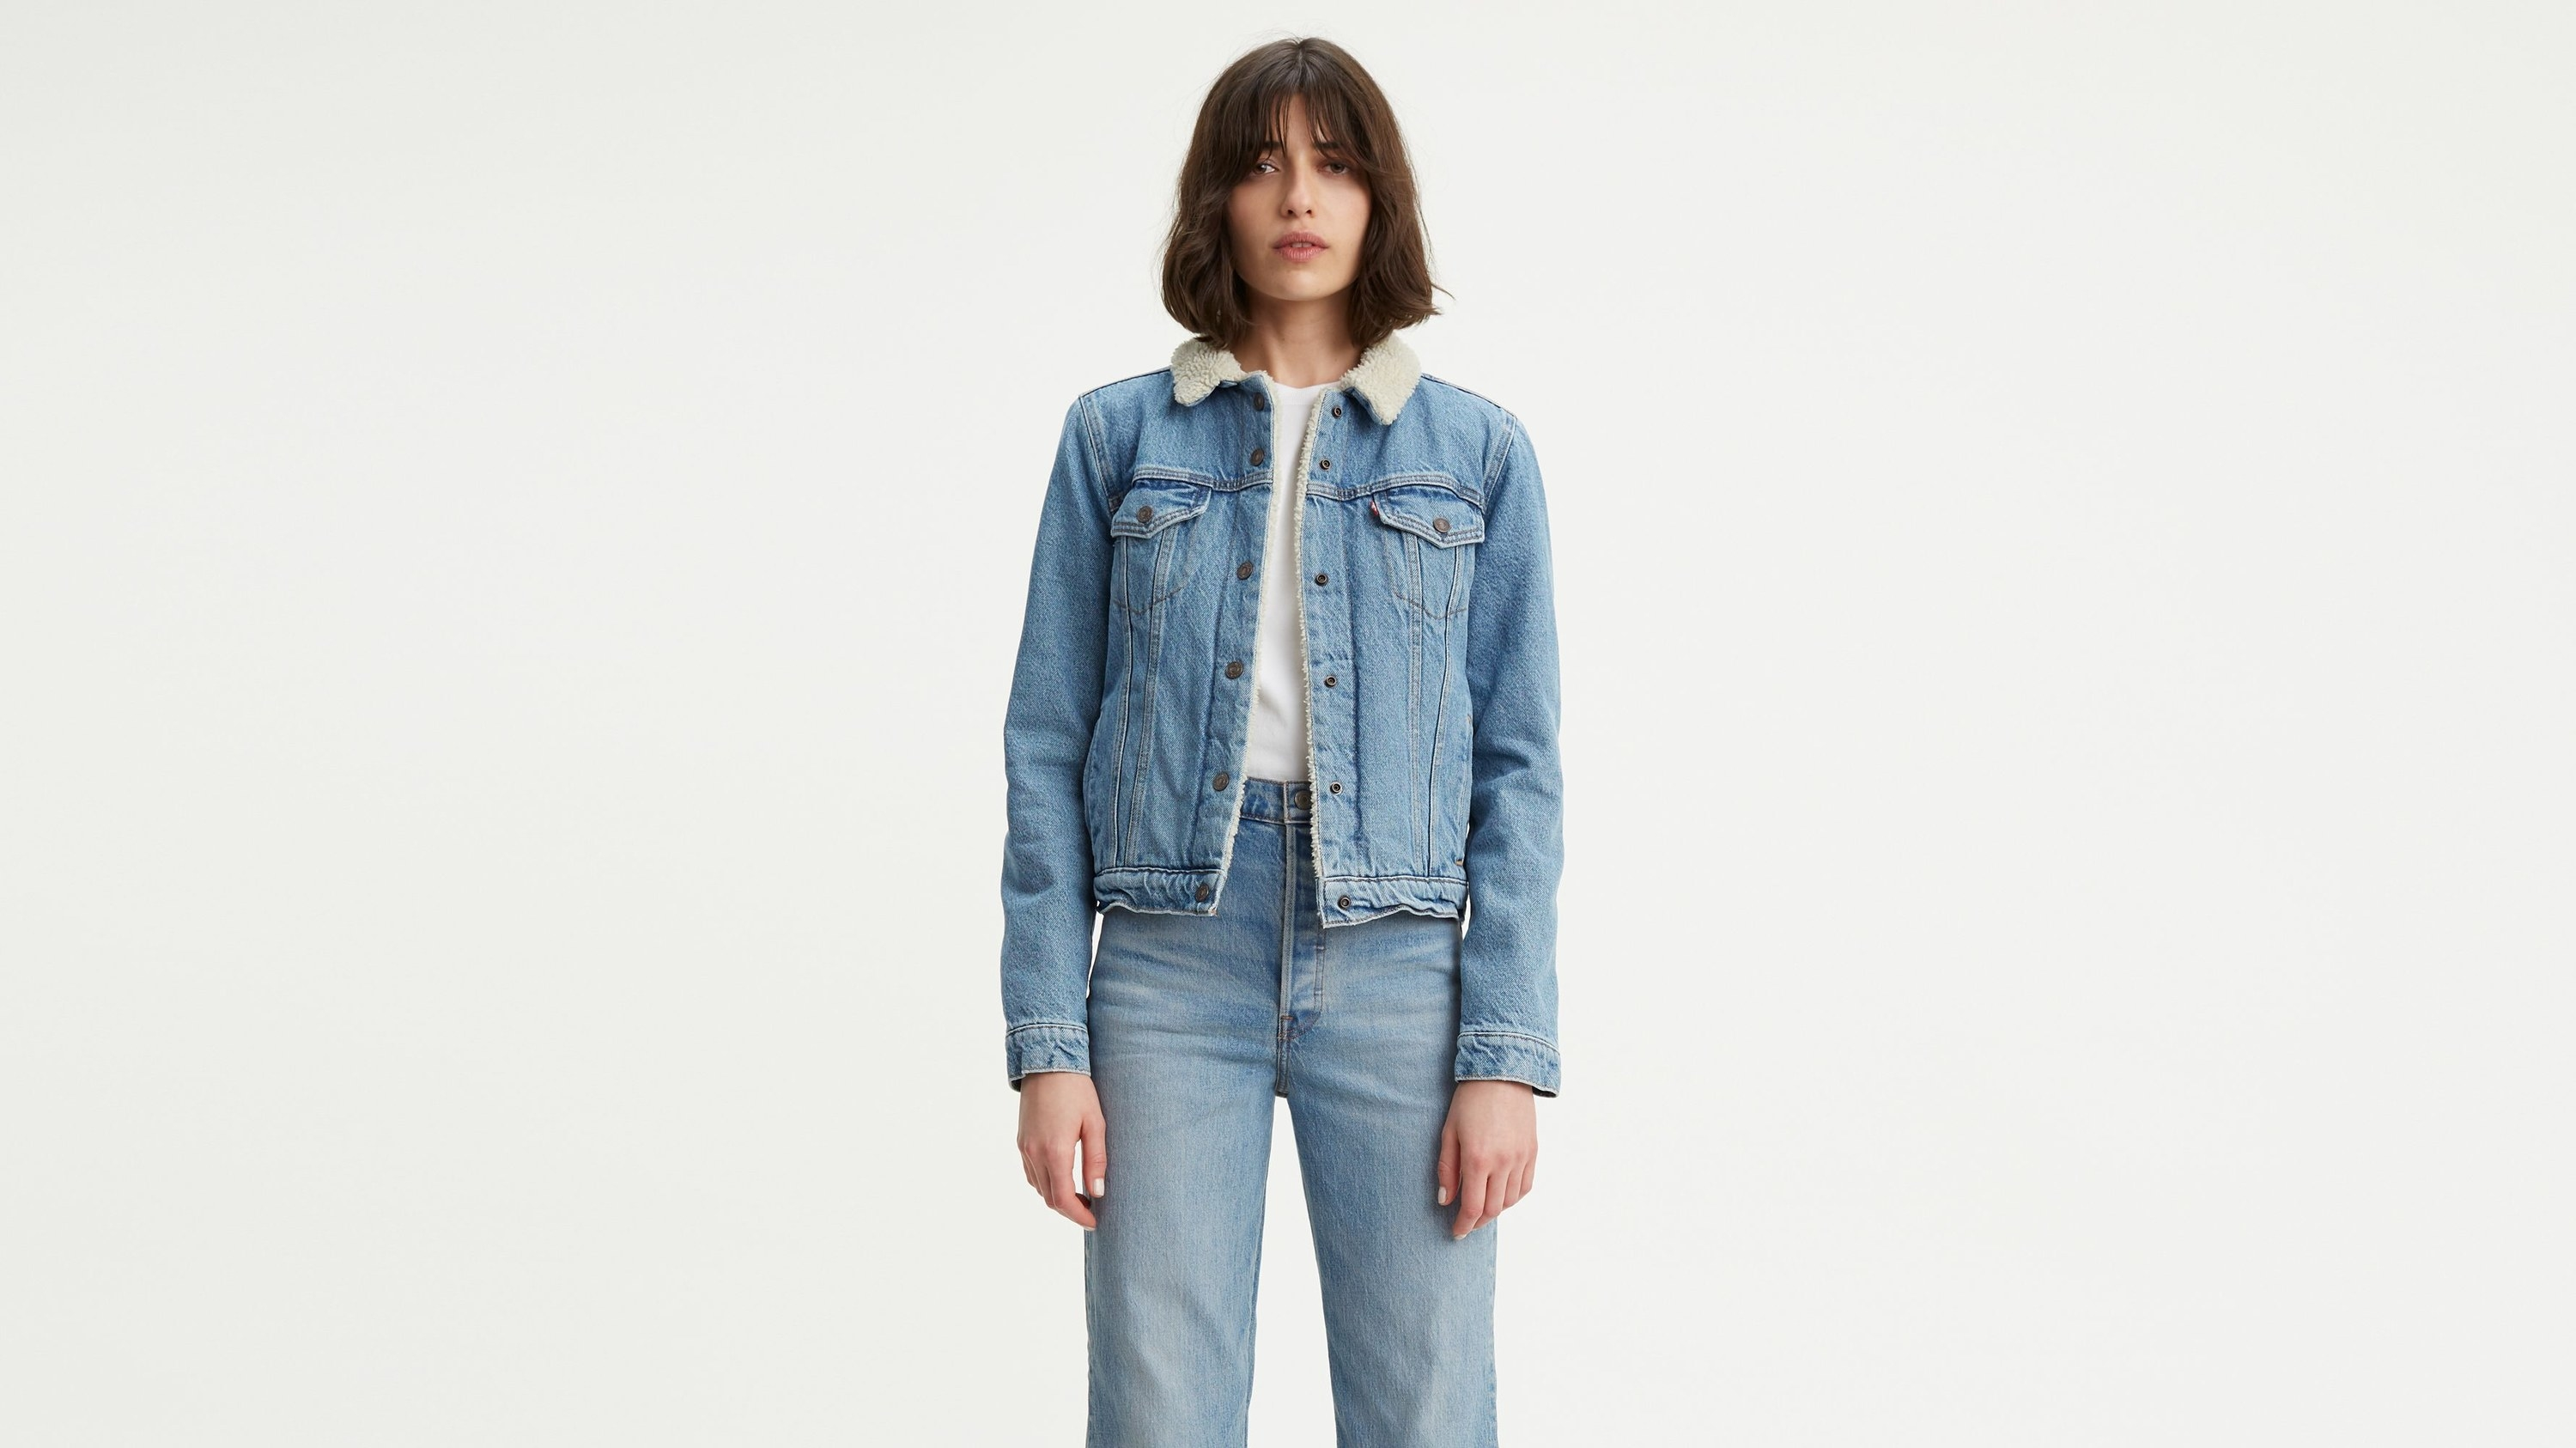 Model wearing the jacket in a light blue denim